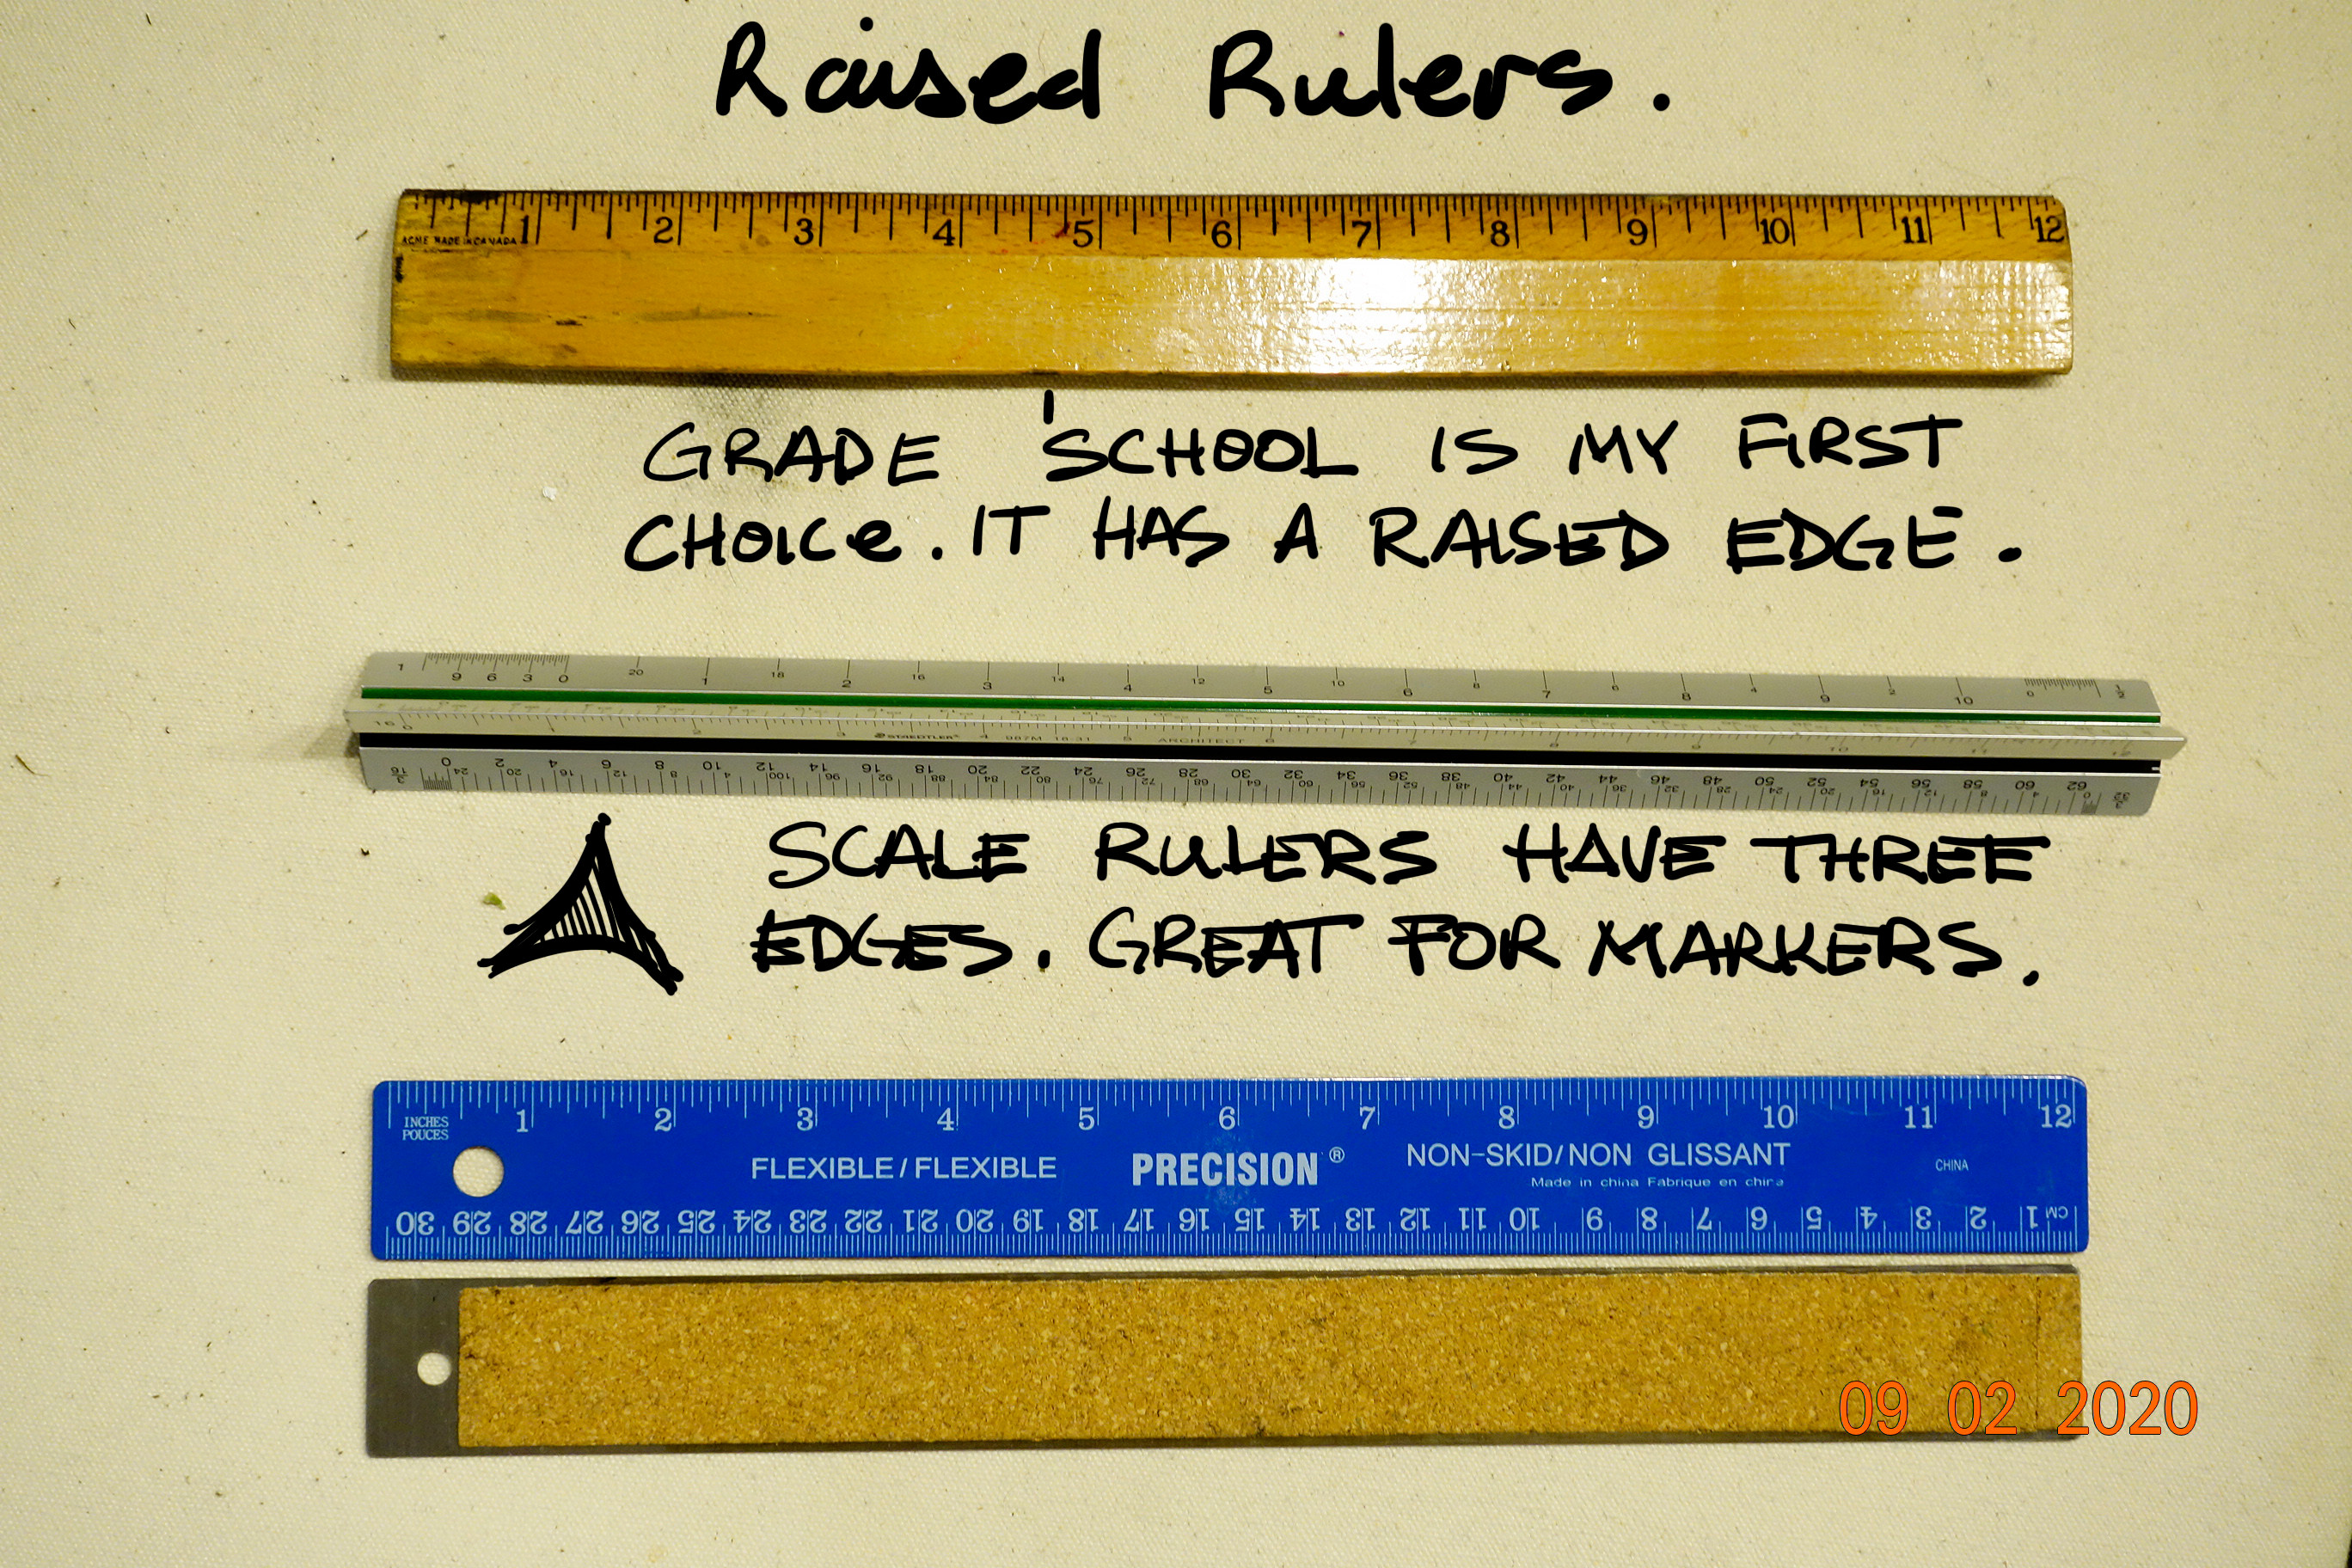 We use rulers for more than just measuring. I prefer a grade school ruler because of it's feel in my hands. When I want to draw a straight line with a brush, a shaped ruler that is raised acts as a great bridge for detailing with a brush.